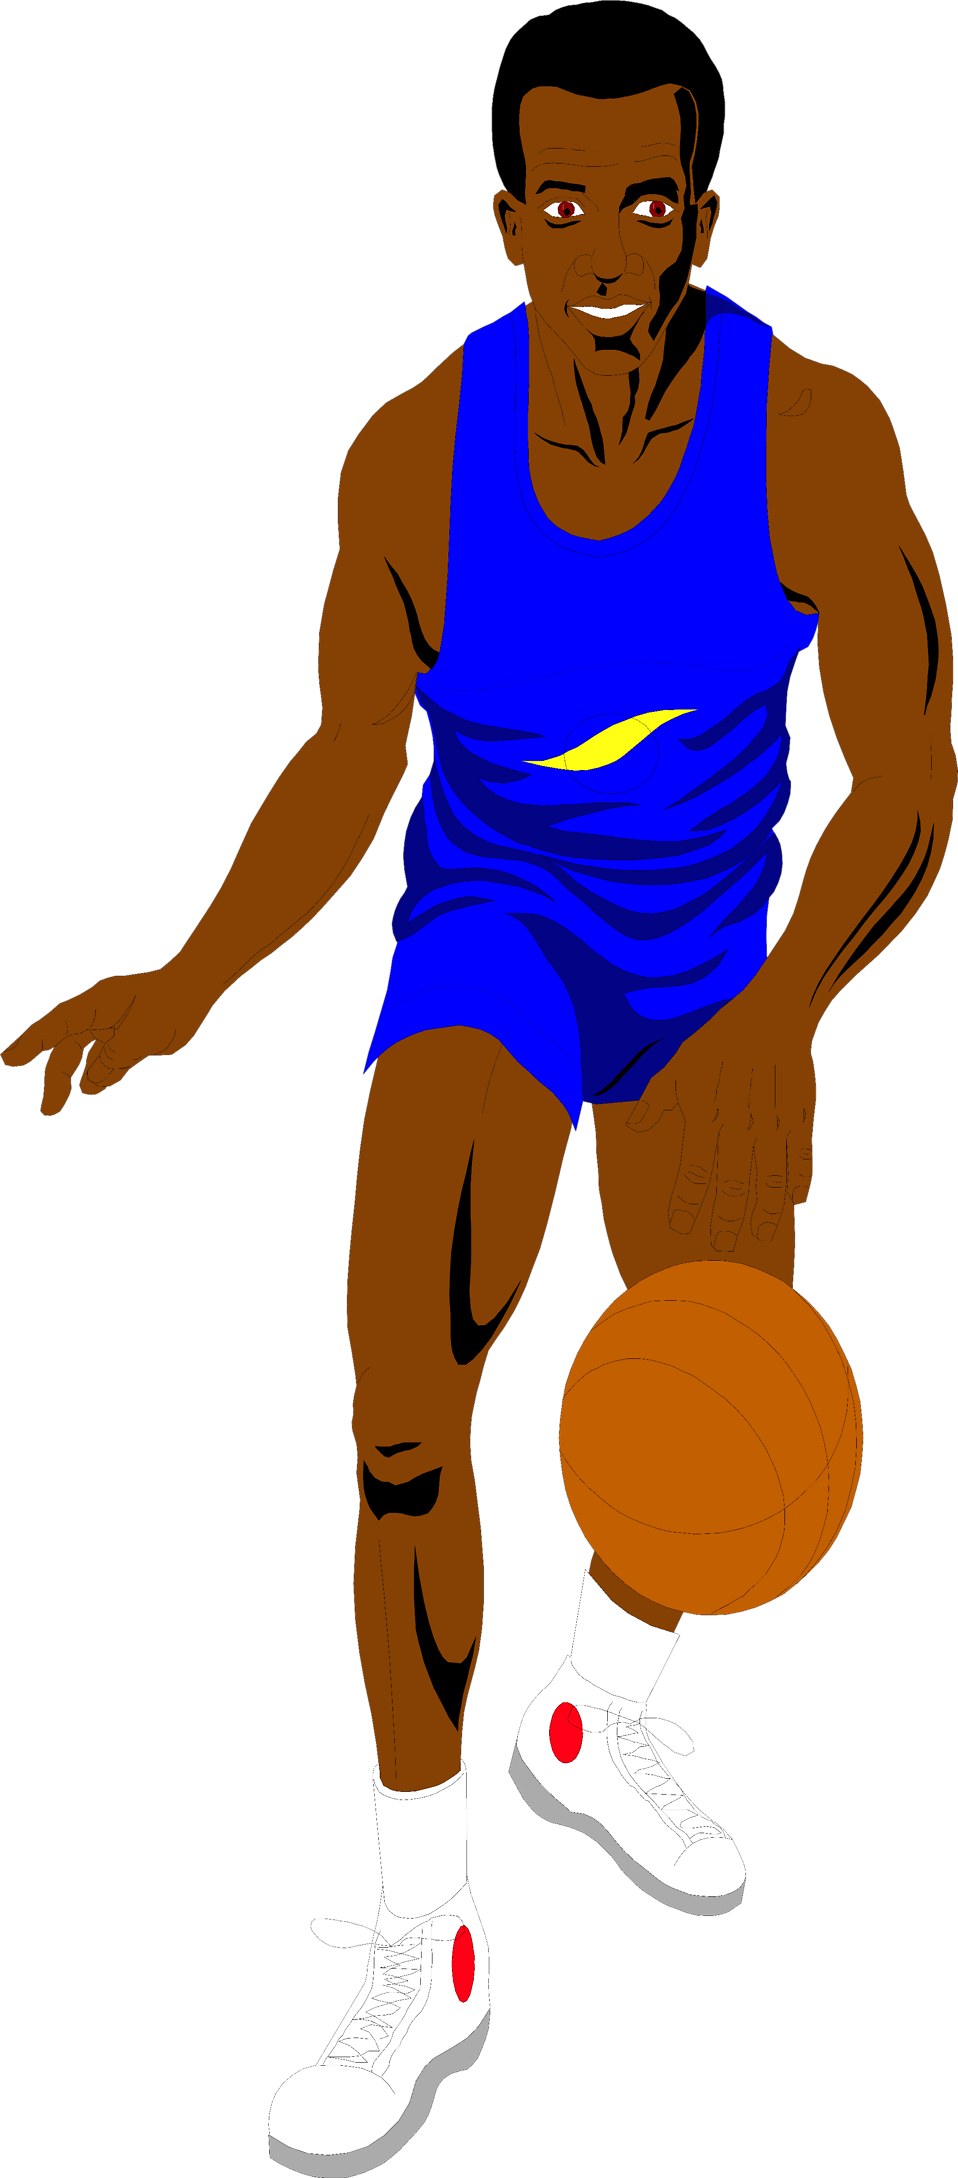 Man playing basketball clipart clipart free download Basketball | Free Stock Photo | Illustration of an African American ... clipart free download